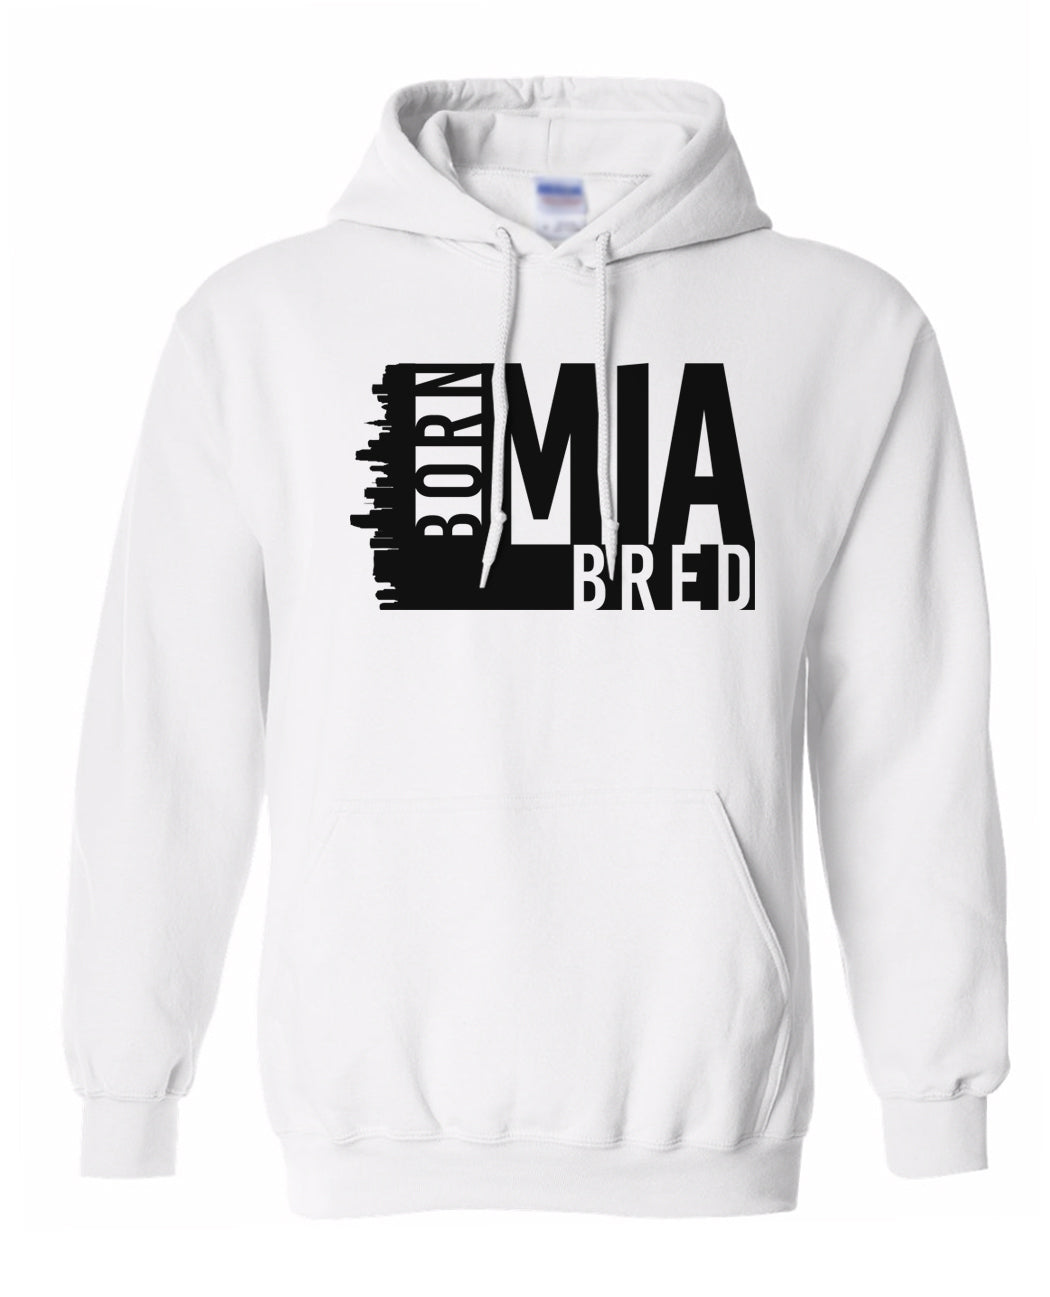 white Miami born and bred hoodie